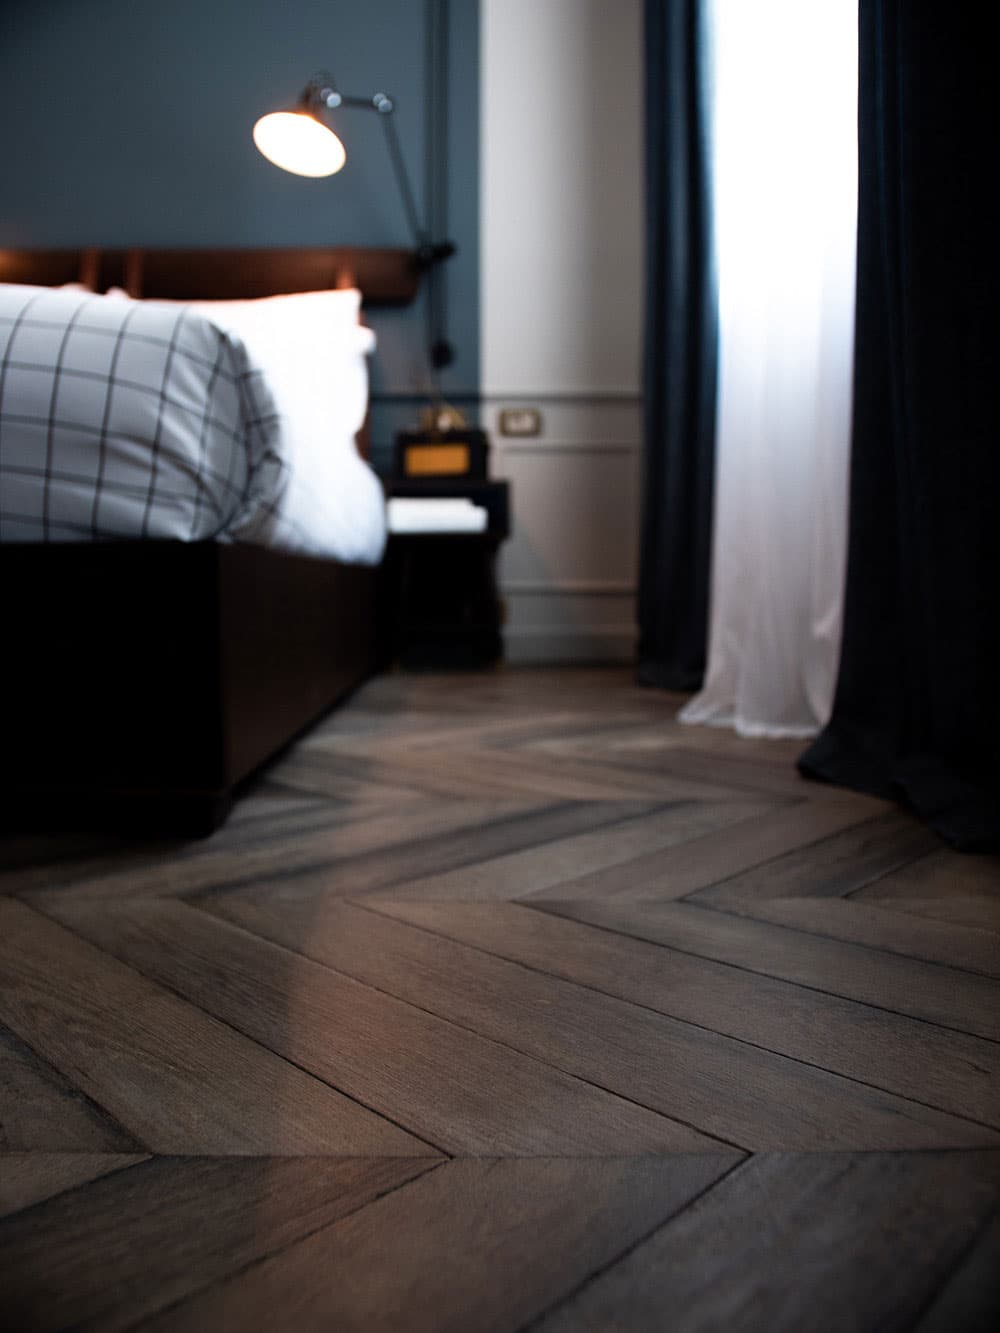 Wooden flooring with a low view of a bed that is lit up with a bedside light.